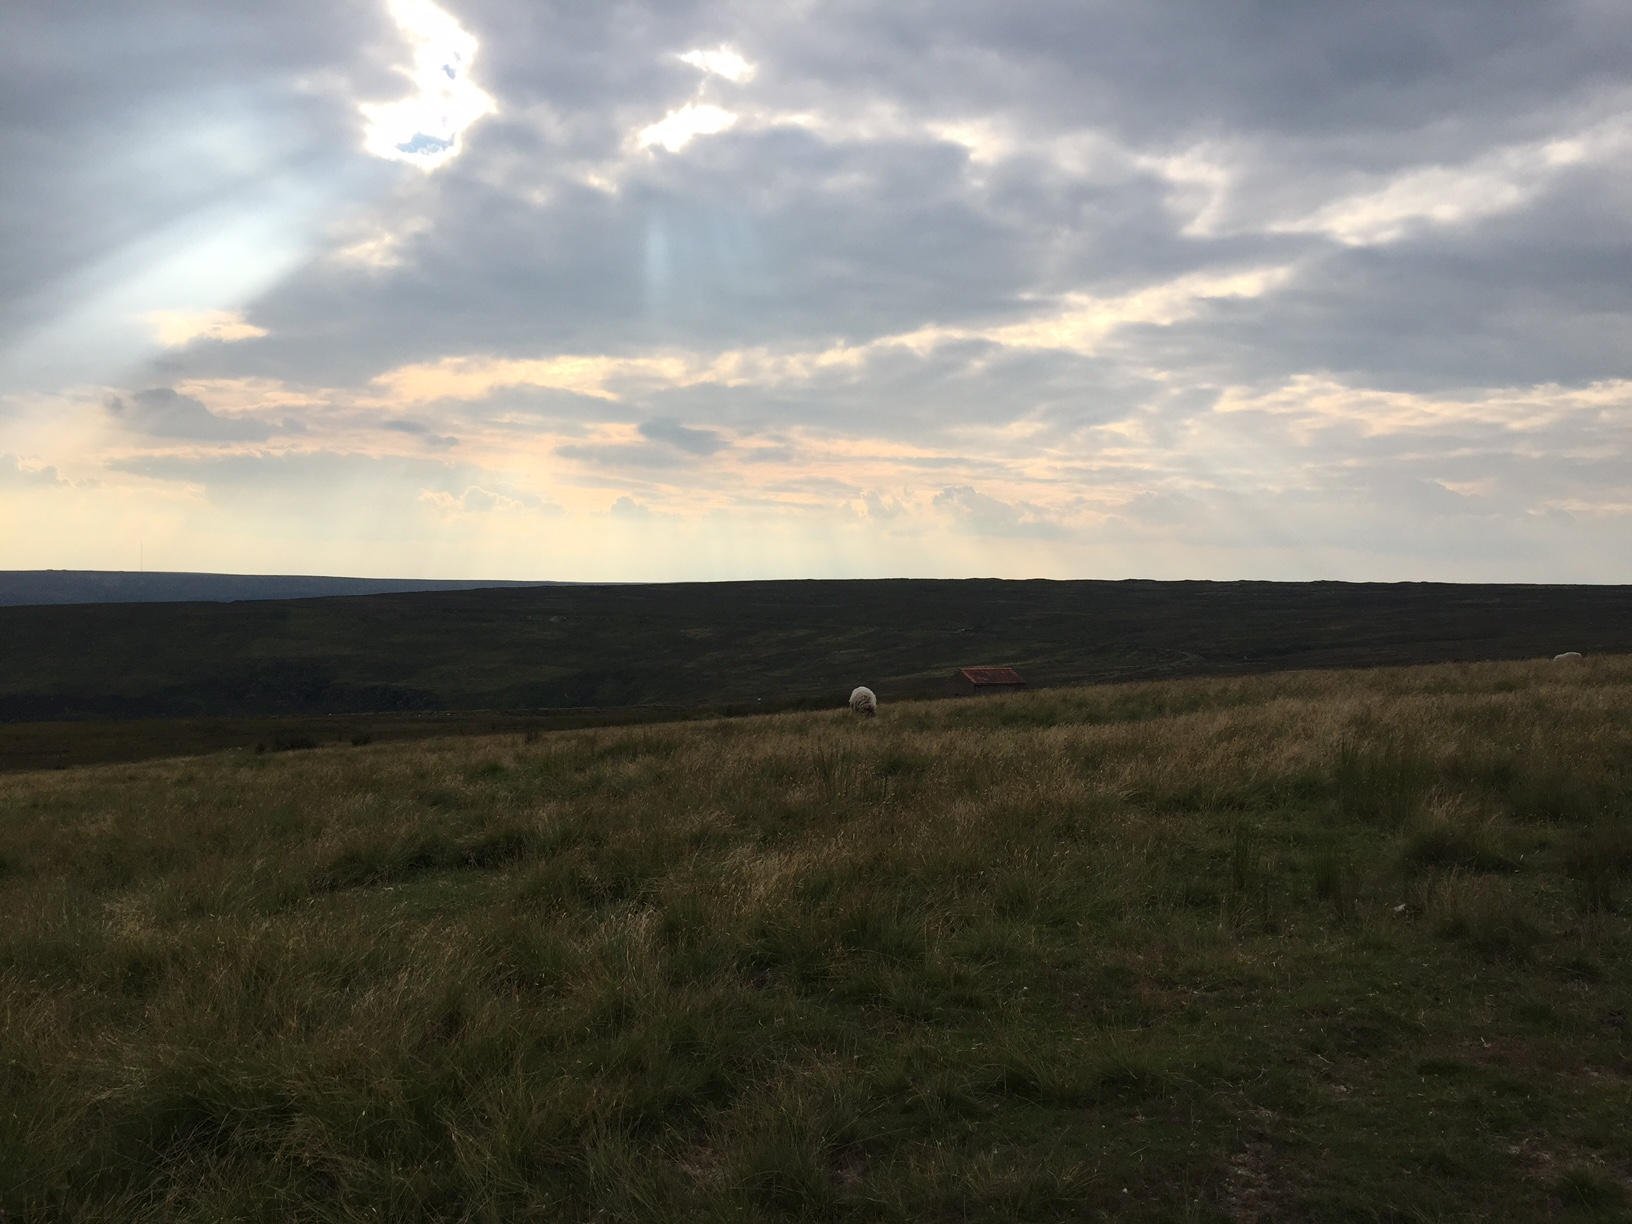 Goodnight from the moors